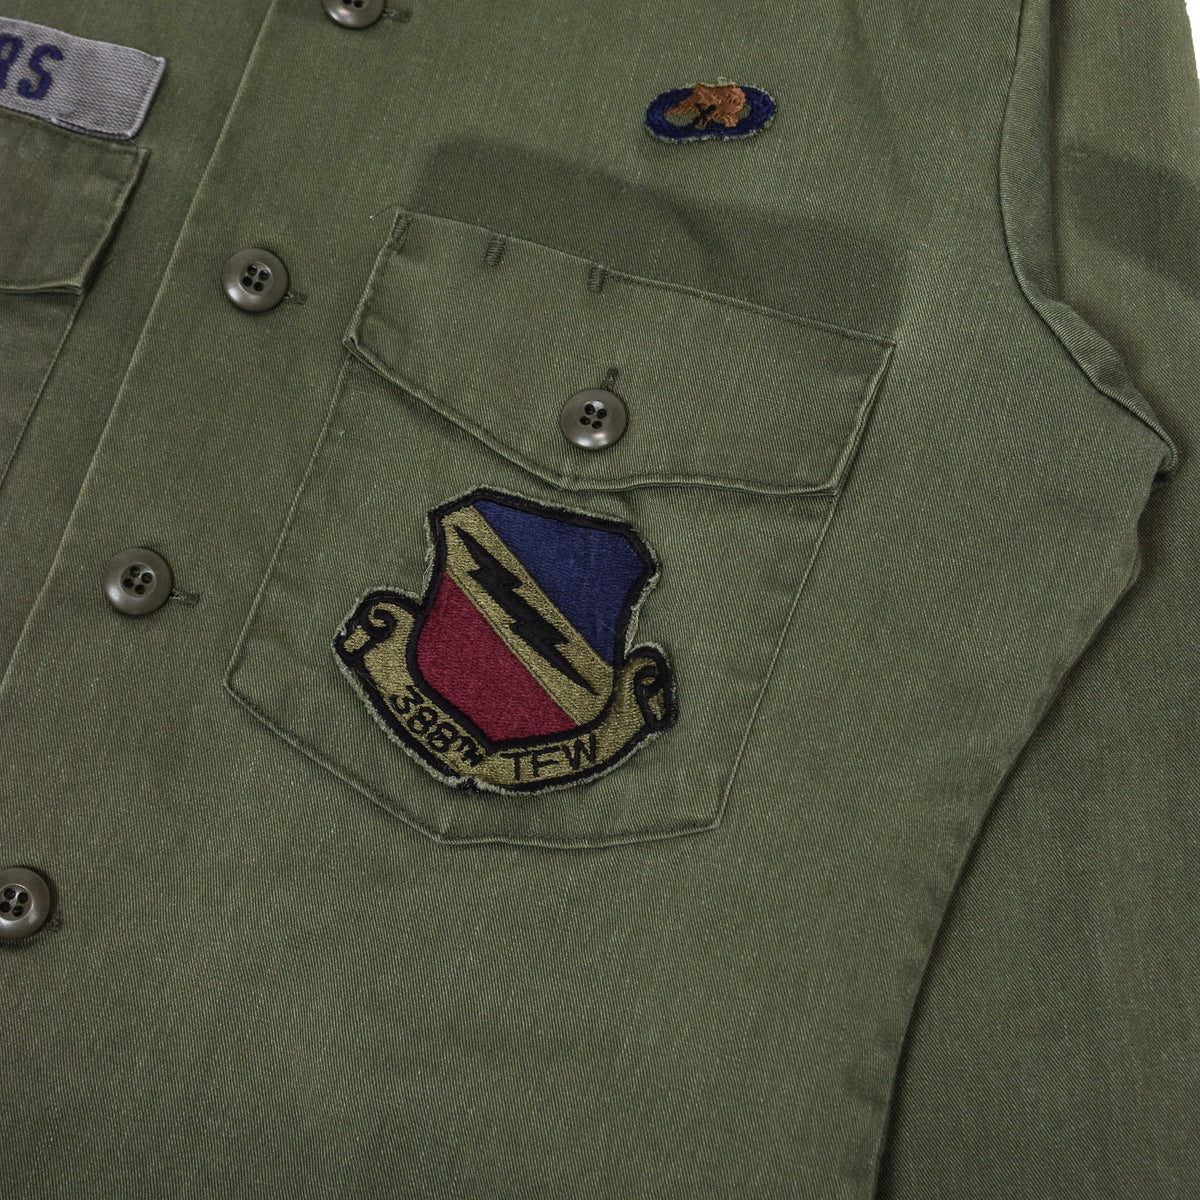 Vintage 80s US Air Force Dura Press Utility Military Shirt OG-507 Olive Green S / M badges two